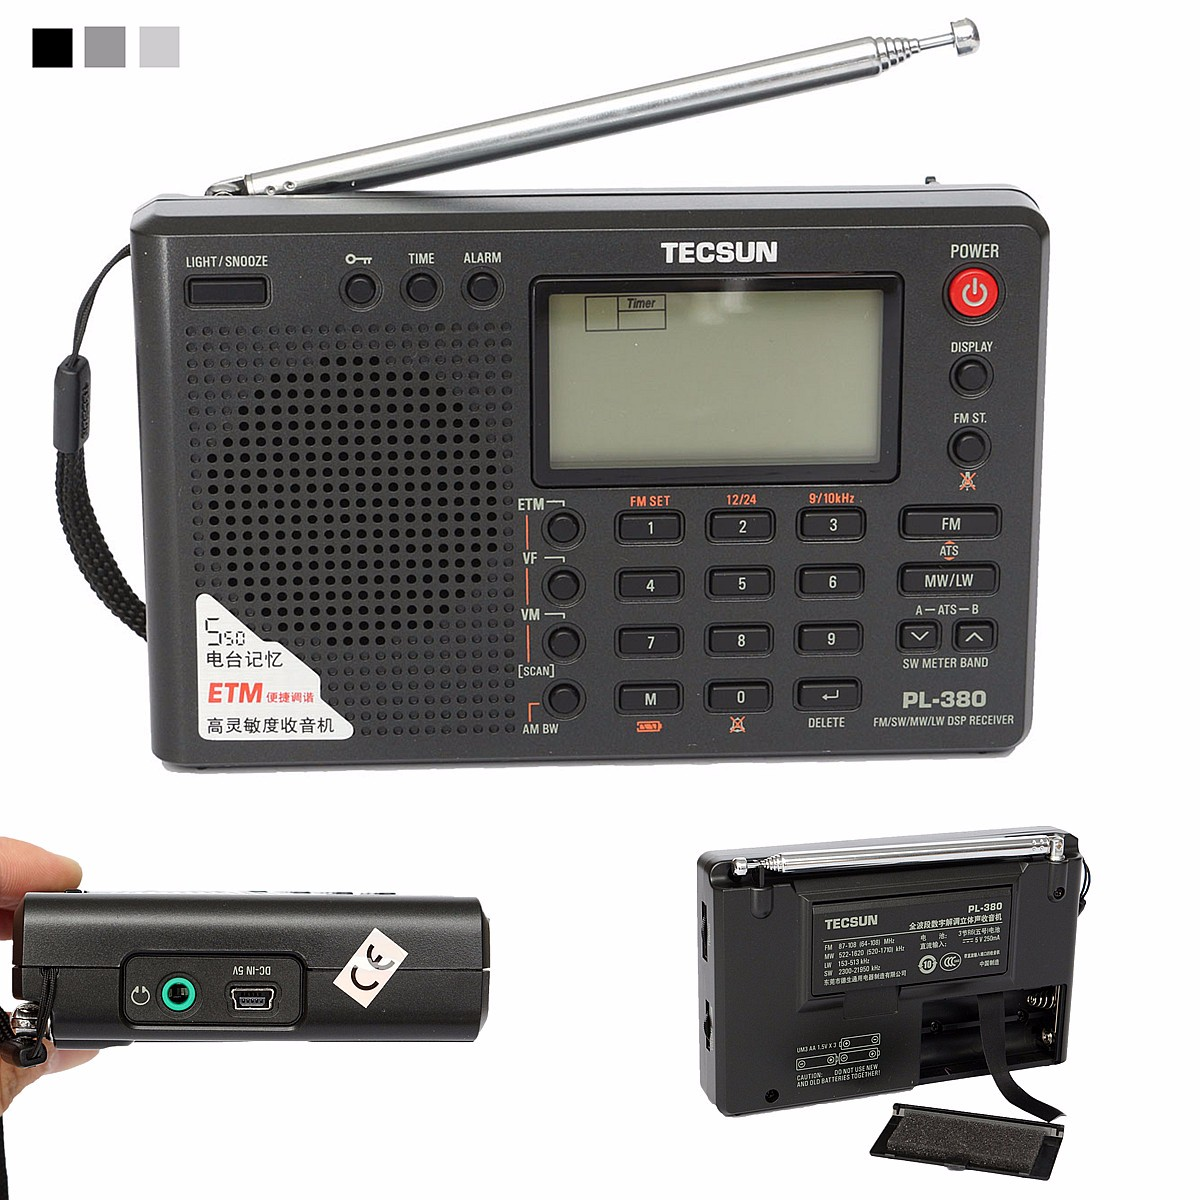 TECSUN PL-380 DSP PLL FM MW SW LW Digital Stereo Radio World-Band Receiver New Silver Gray Black 7 Tuning Mode Selectable new tecsun s2000 s 2000 digital fm stereo lw mw sw ssb air pll synthesized world band radio receiver shipping by dhl